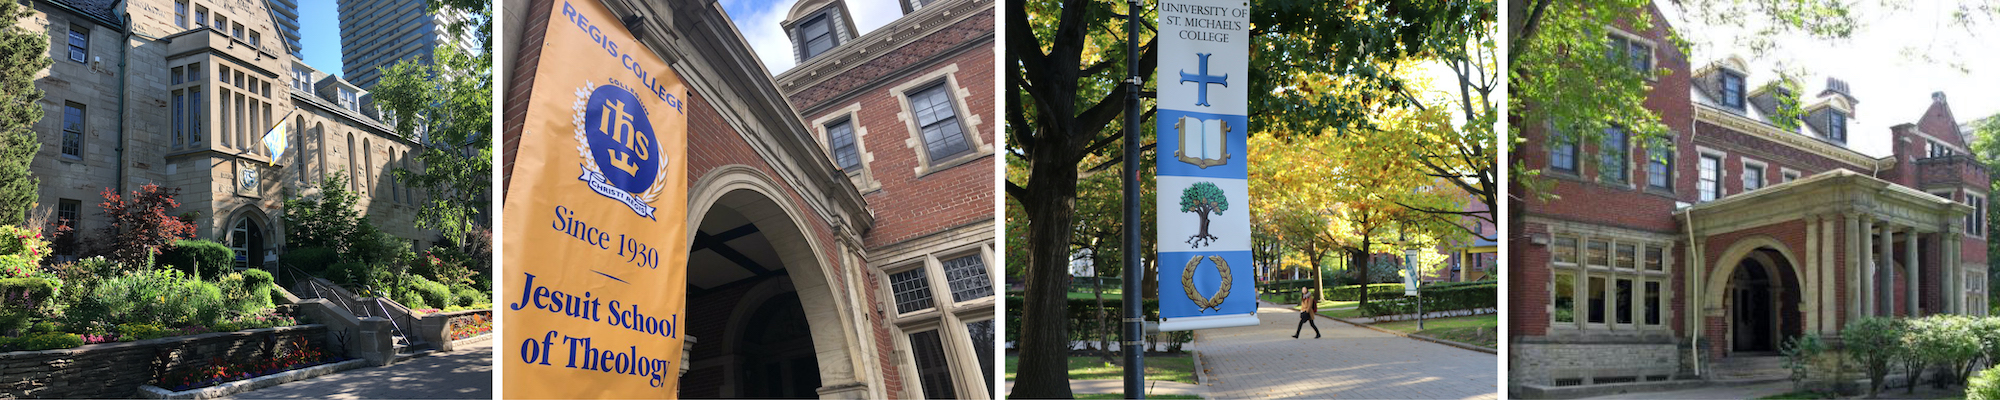 Federation Between Regis College and University of St. Michael's College Takes Important Step Forward